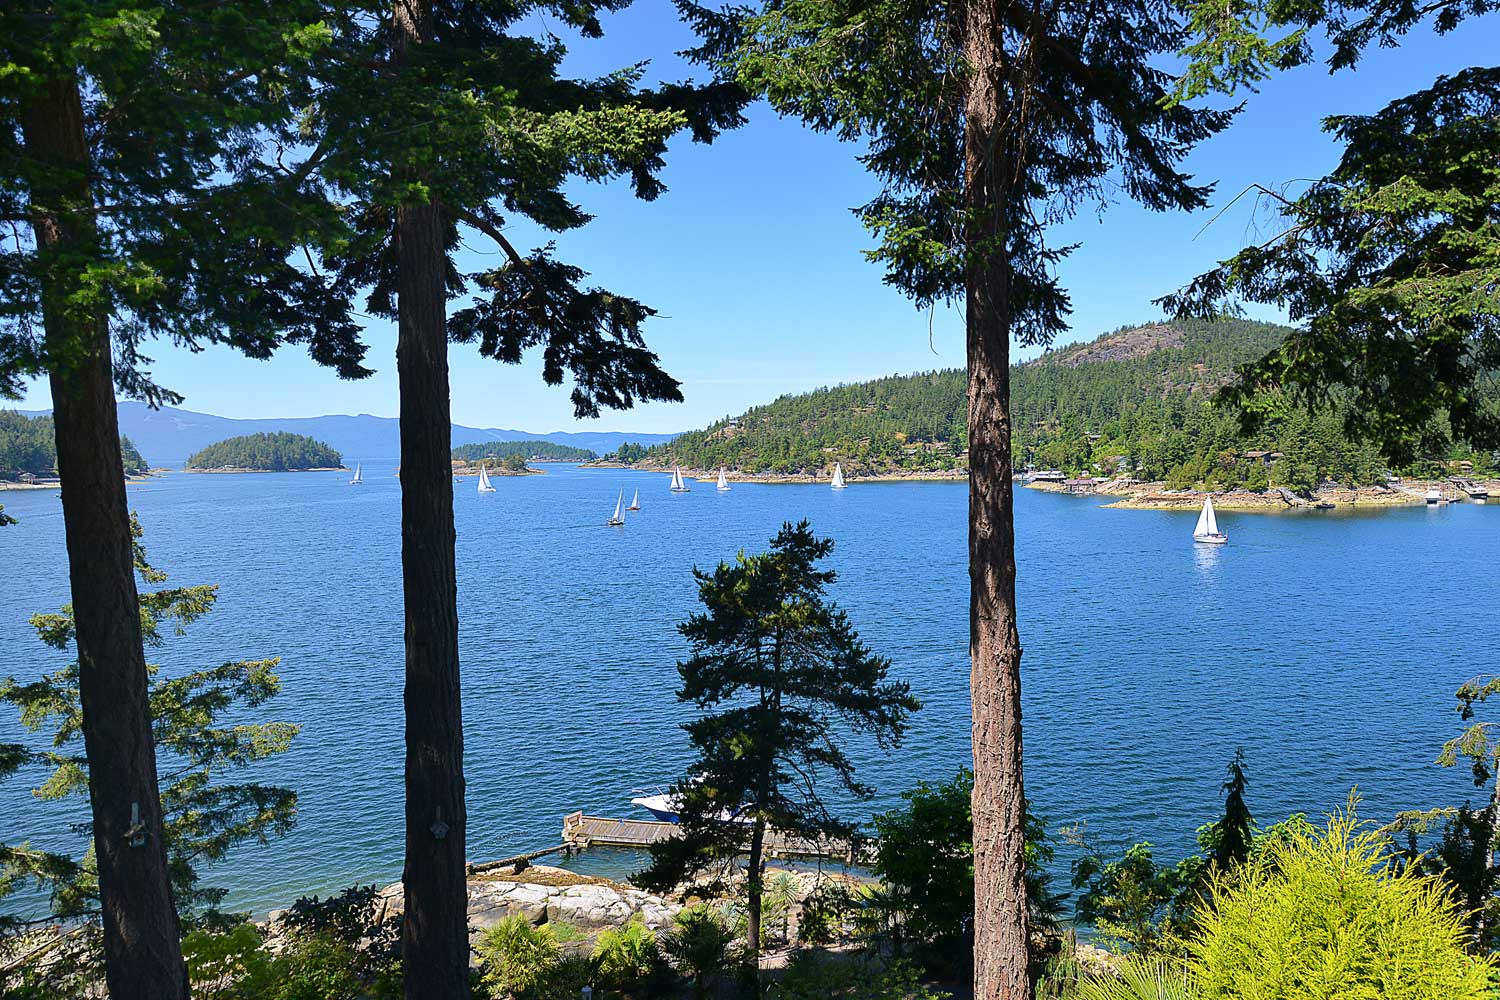 A spectacular view of Pender Harbour, filled with colourful sailboats, is seen from the main floor balcony of this oceanfront house rental.